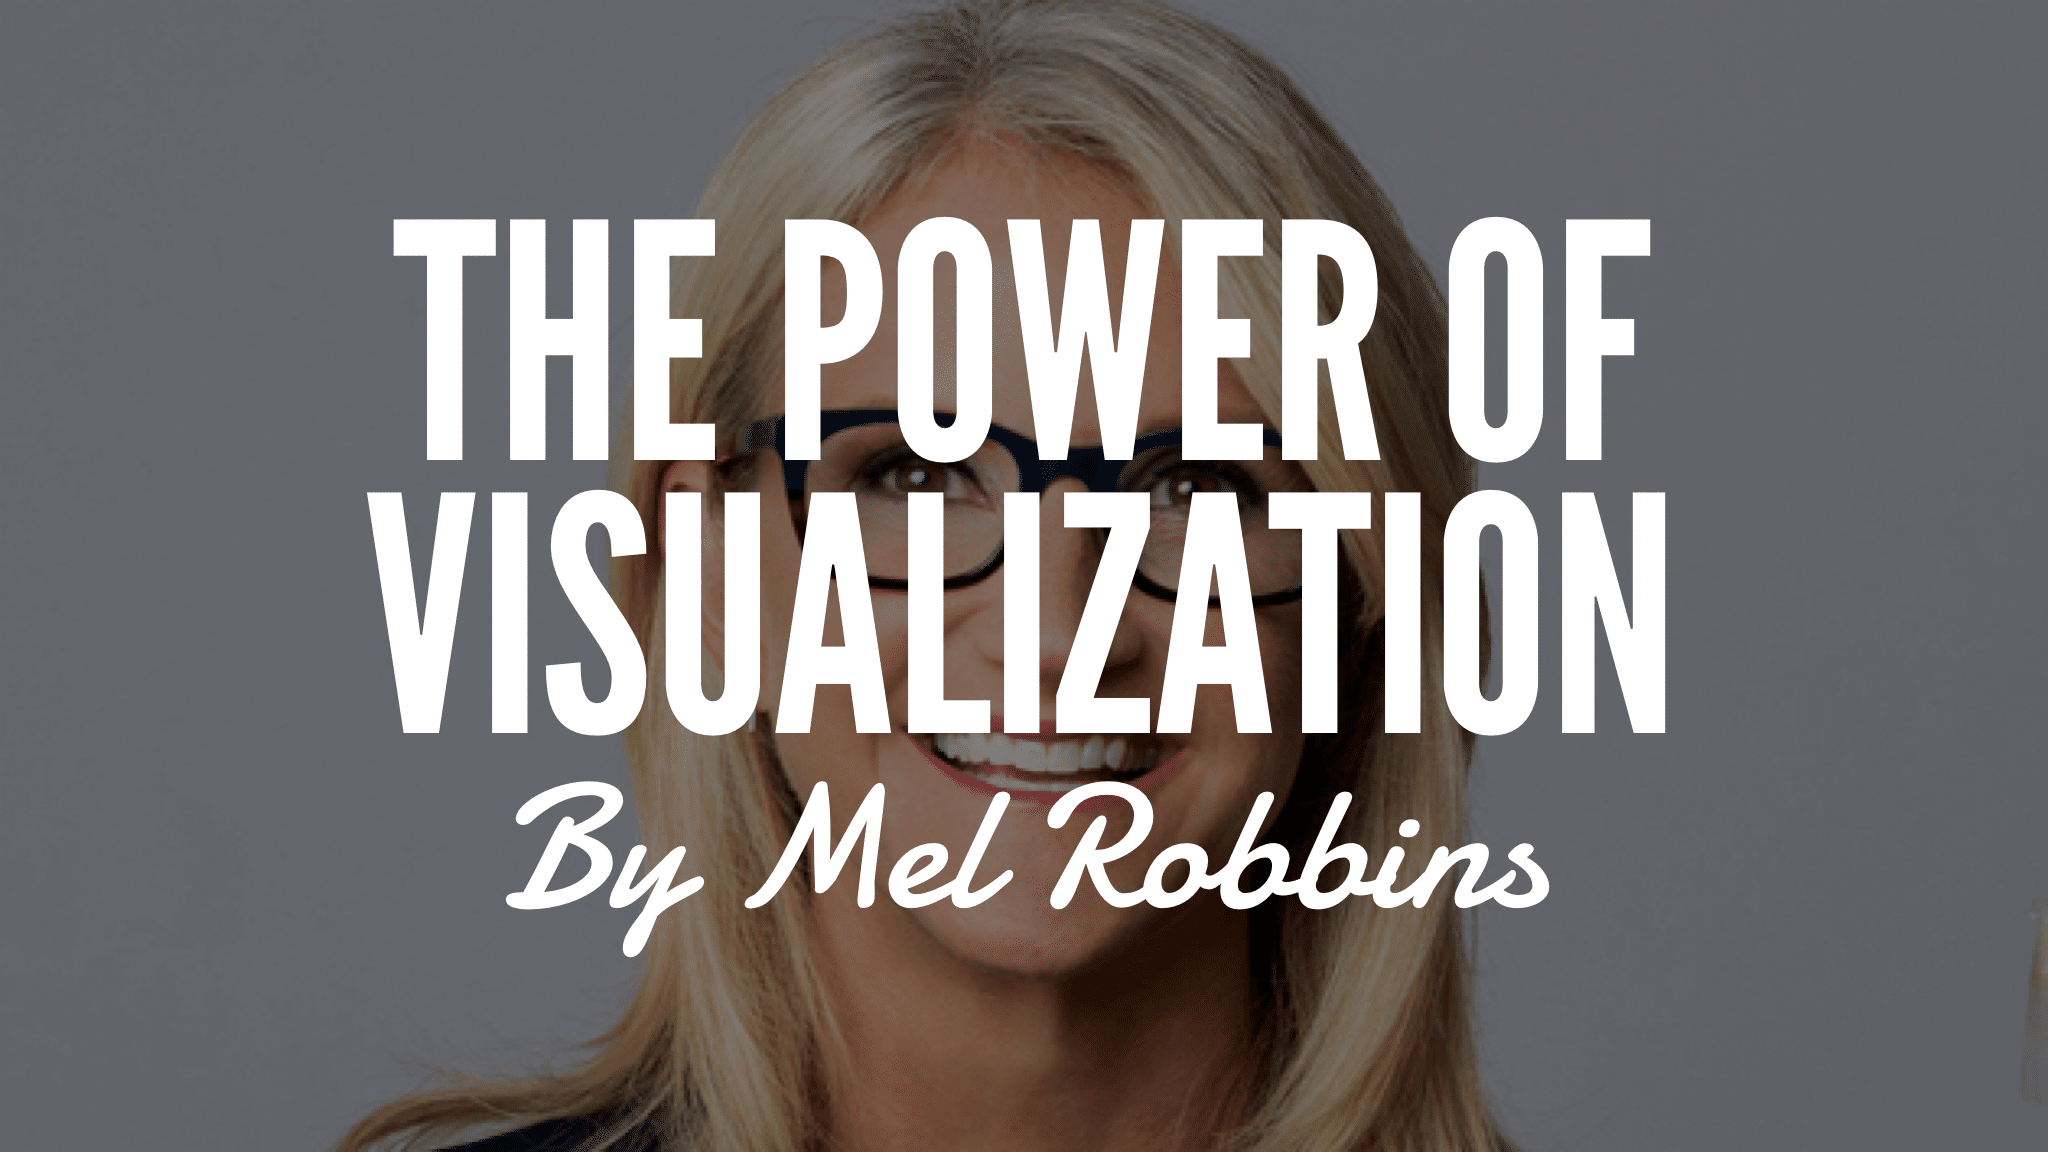 The Power Of Visualization By Mel Robbins